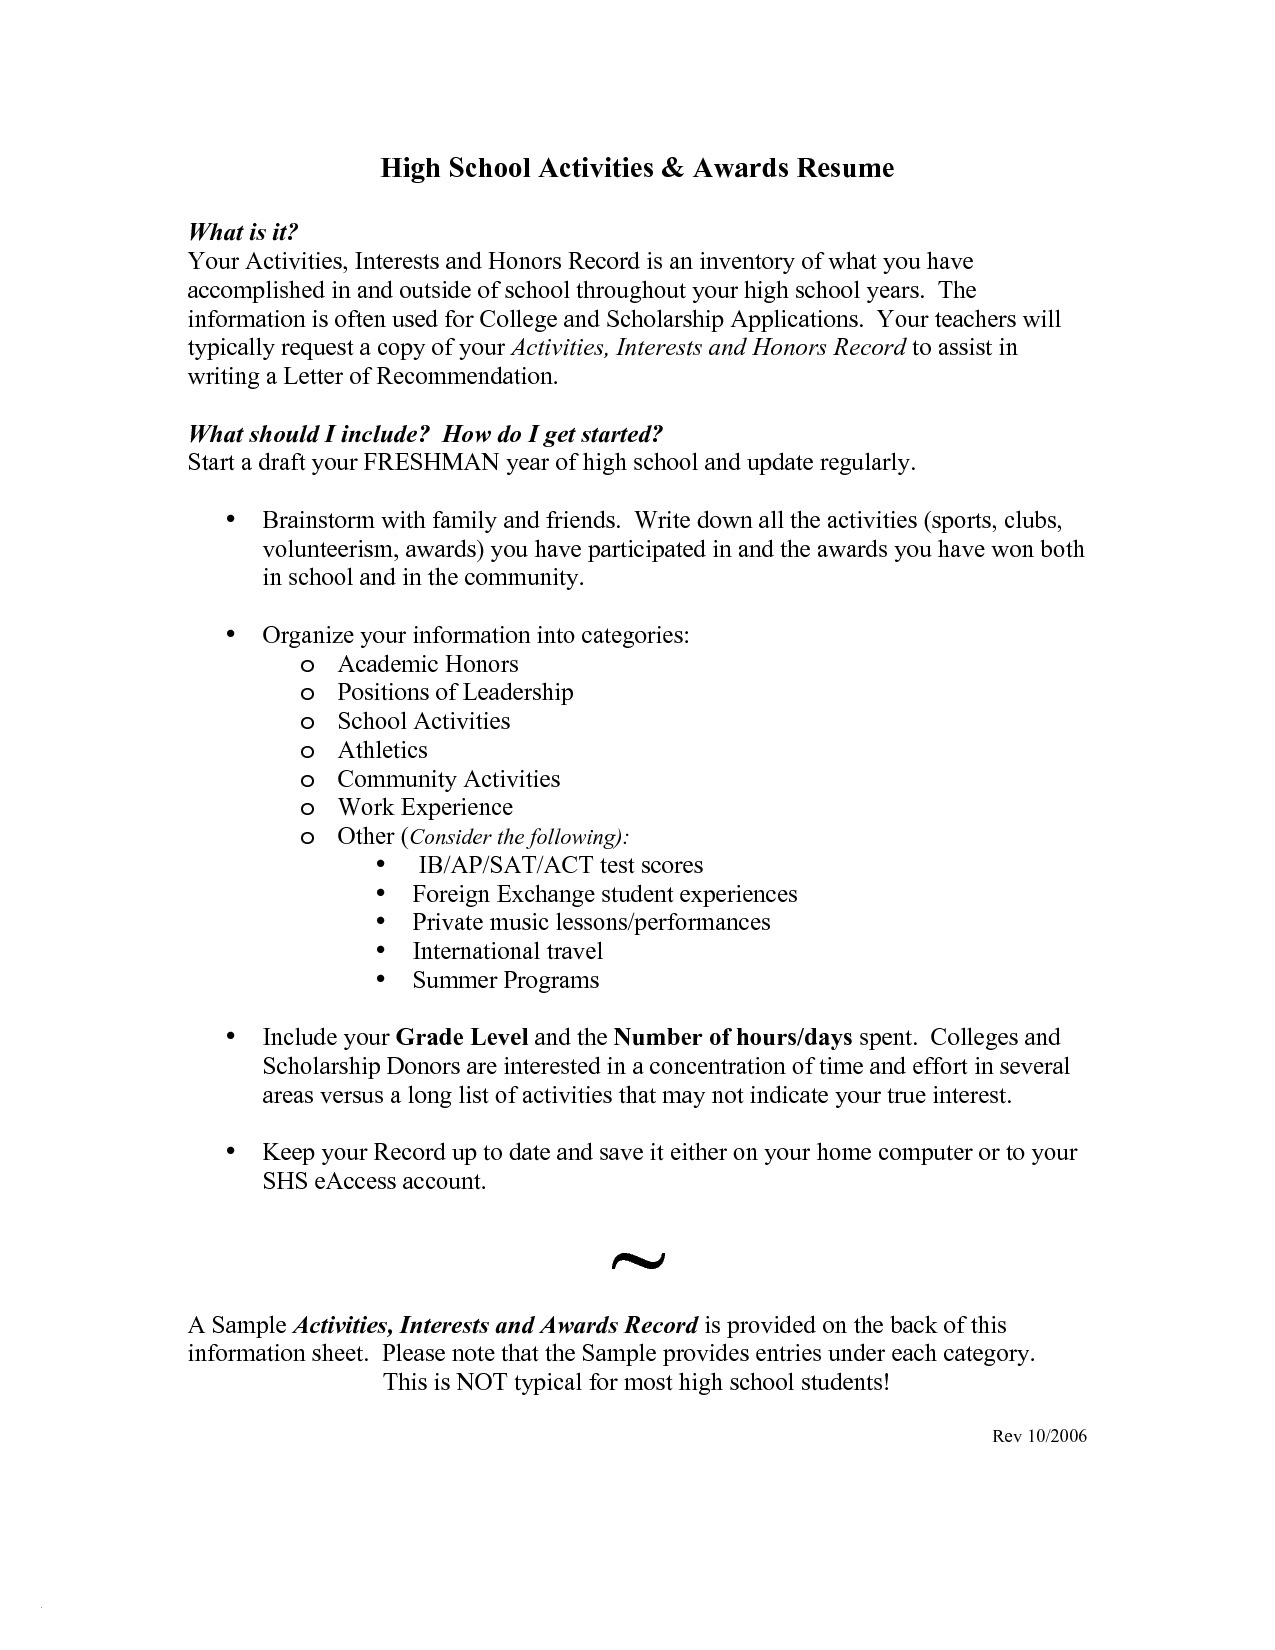 College Freshman Resume - Freshman College Resume New College Application Resume Examples Best